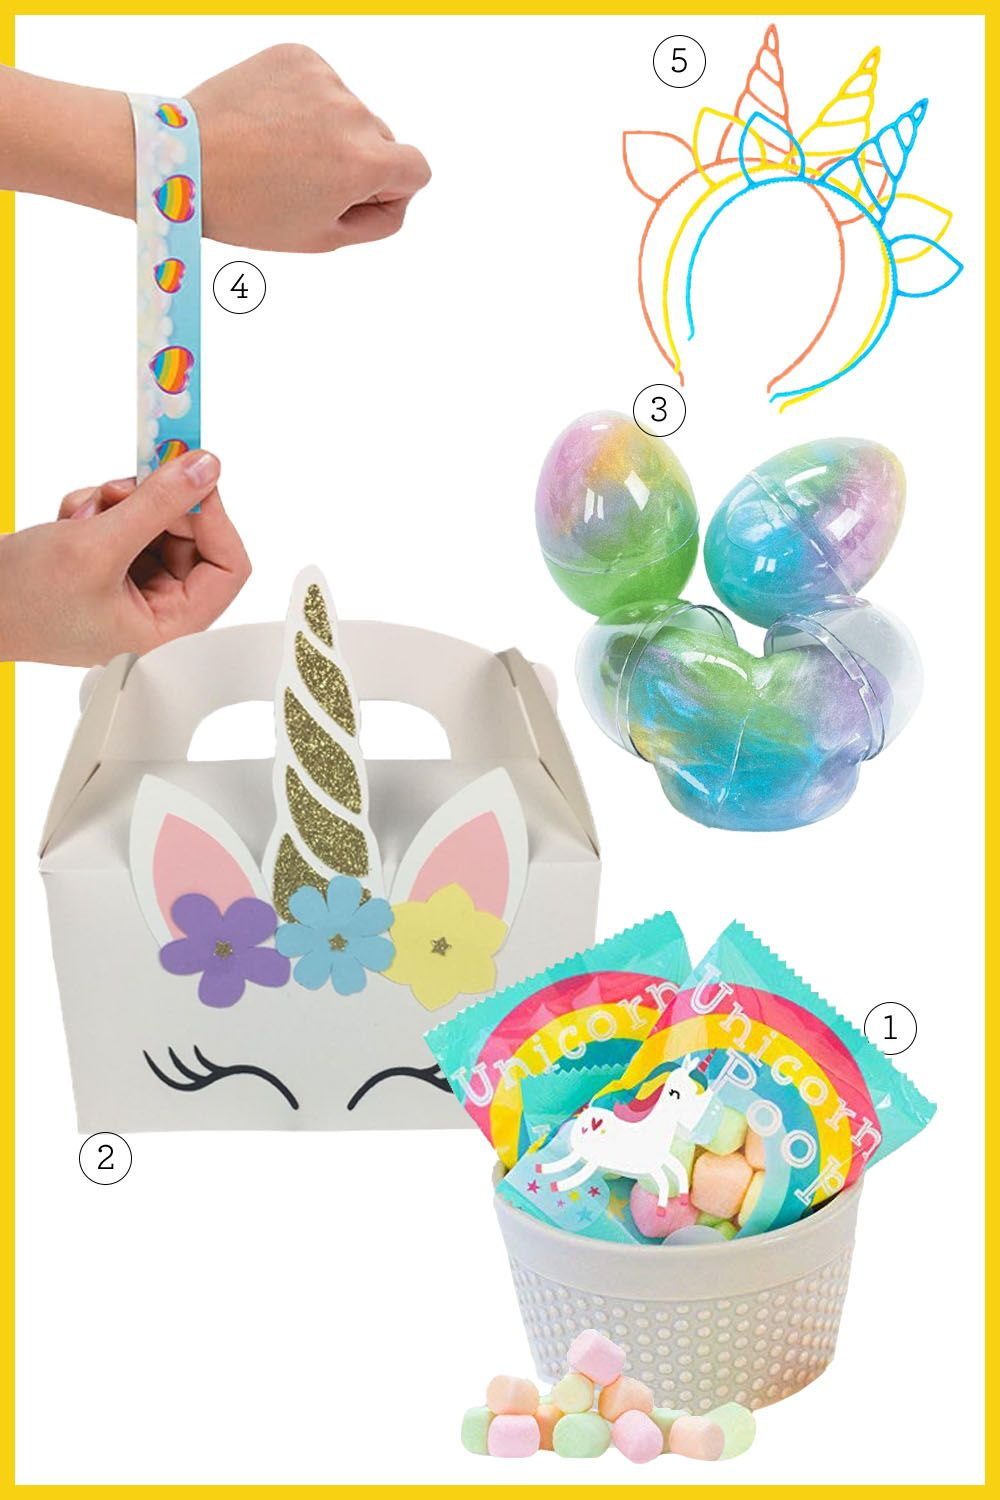 Best Goodie Bag Ideas For Kids Birthday Parties Cheap Fun Kids Party Favors